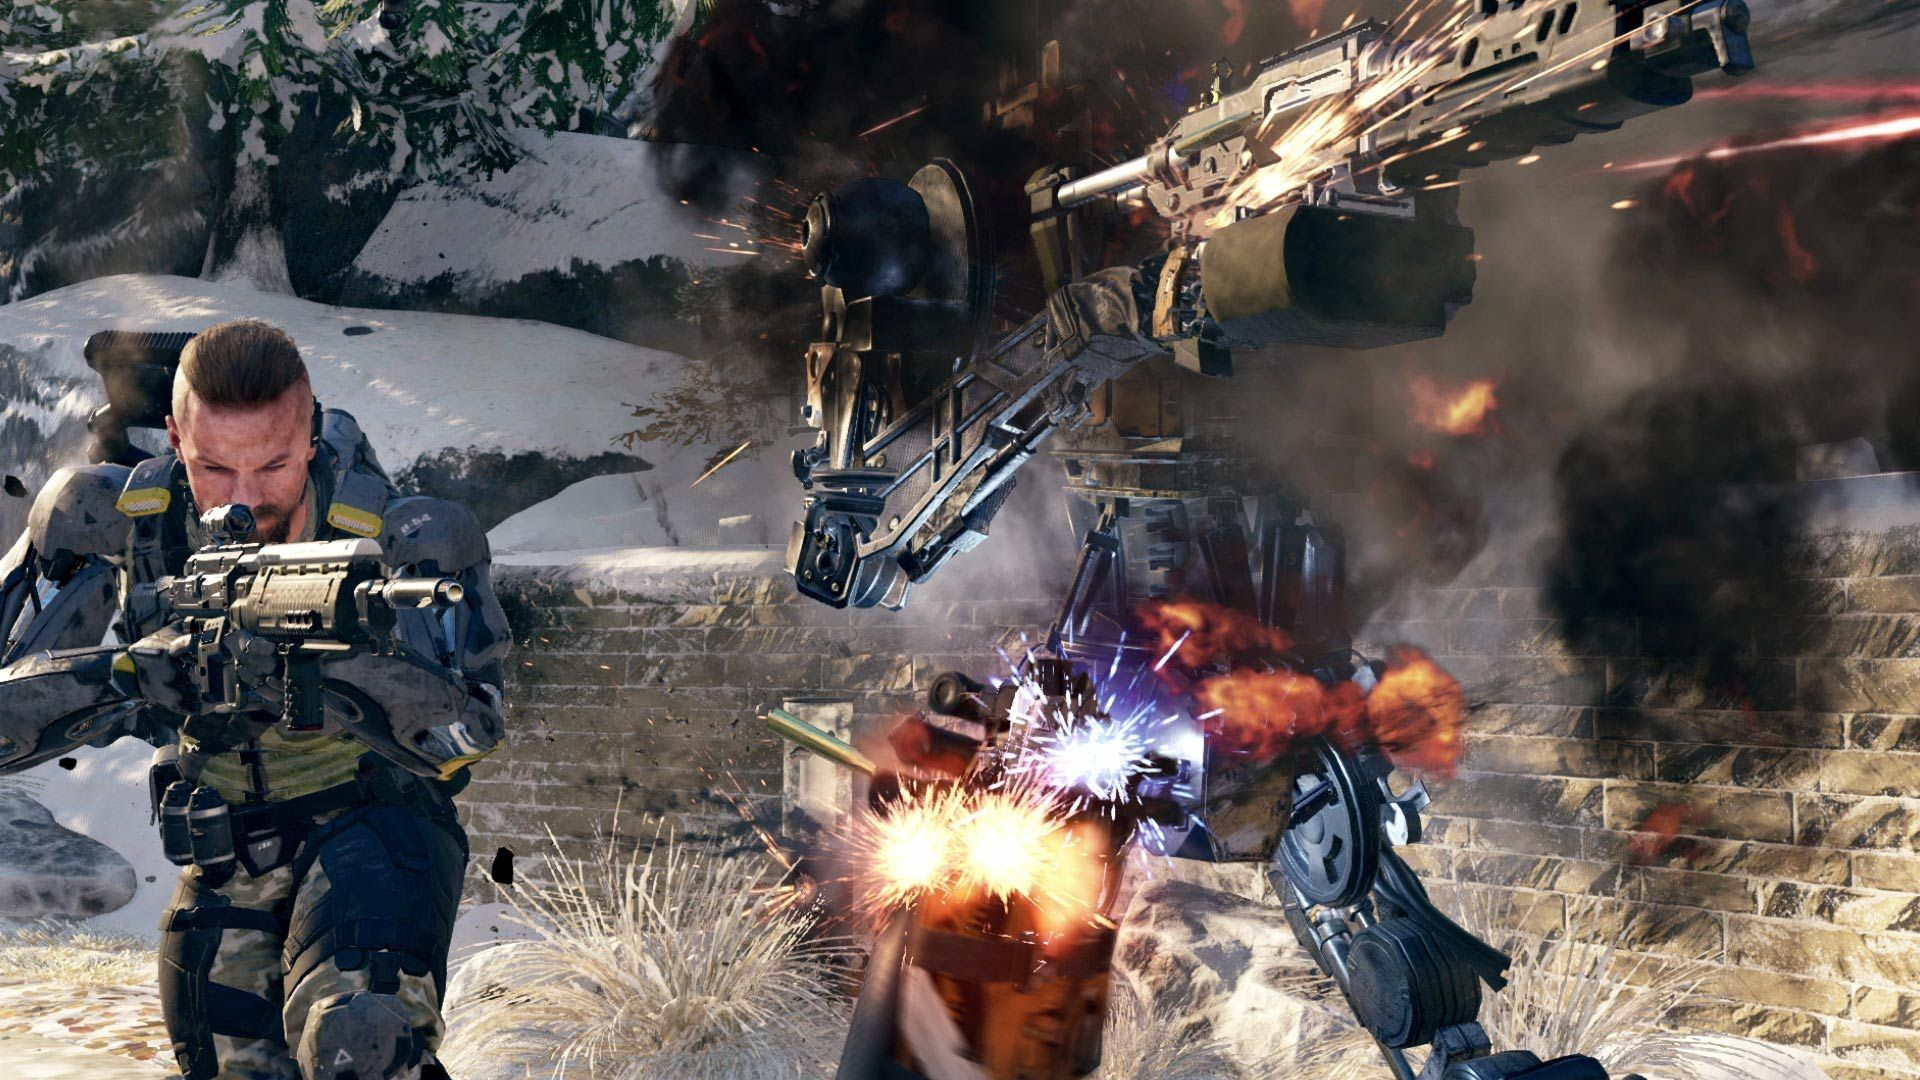 Official Call Of Duty Black Ops Iii Multiplayer Reveal Trailer